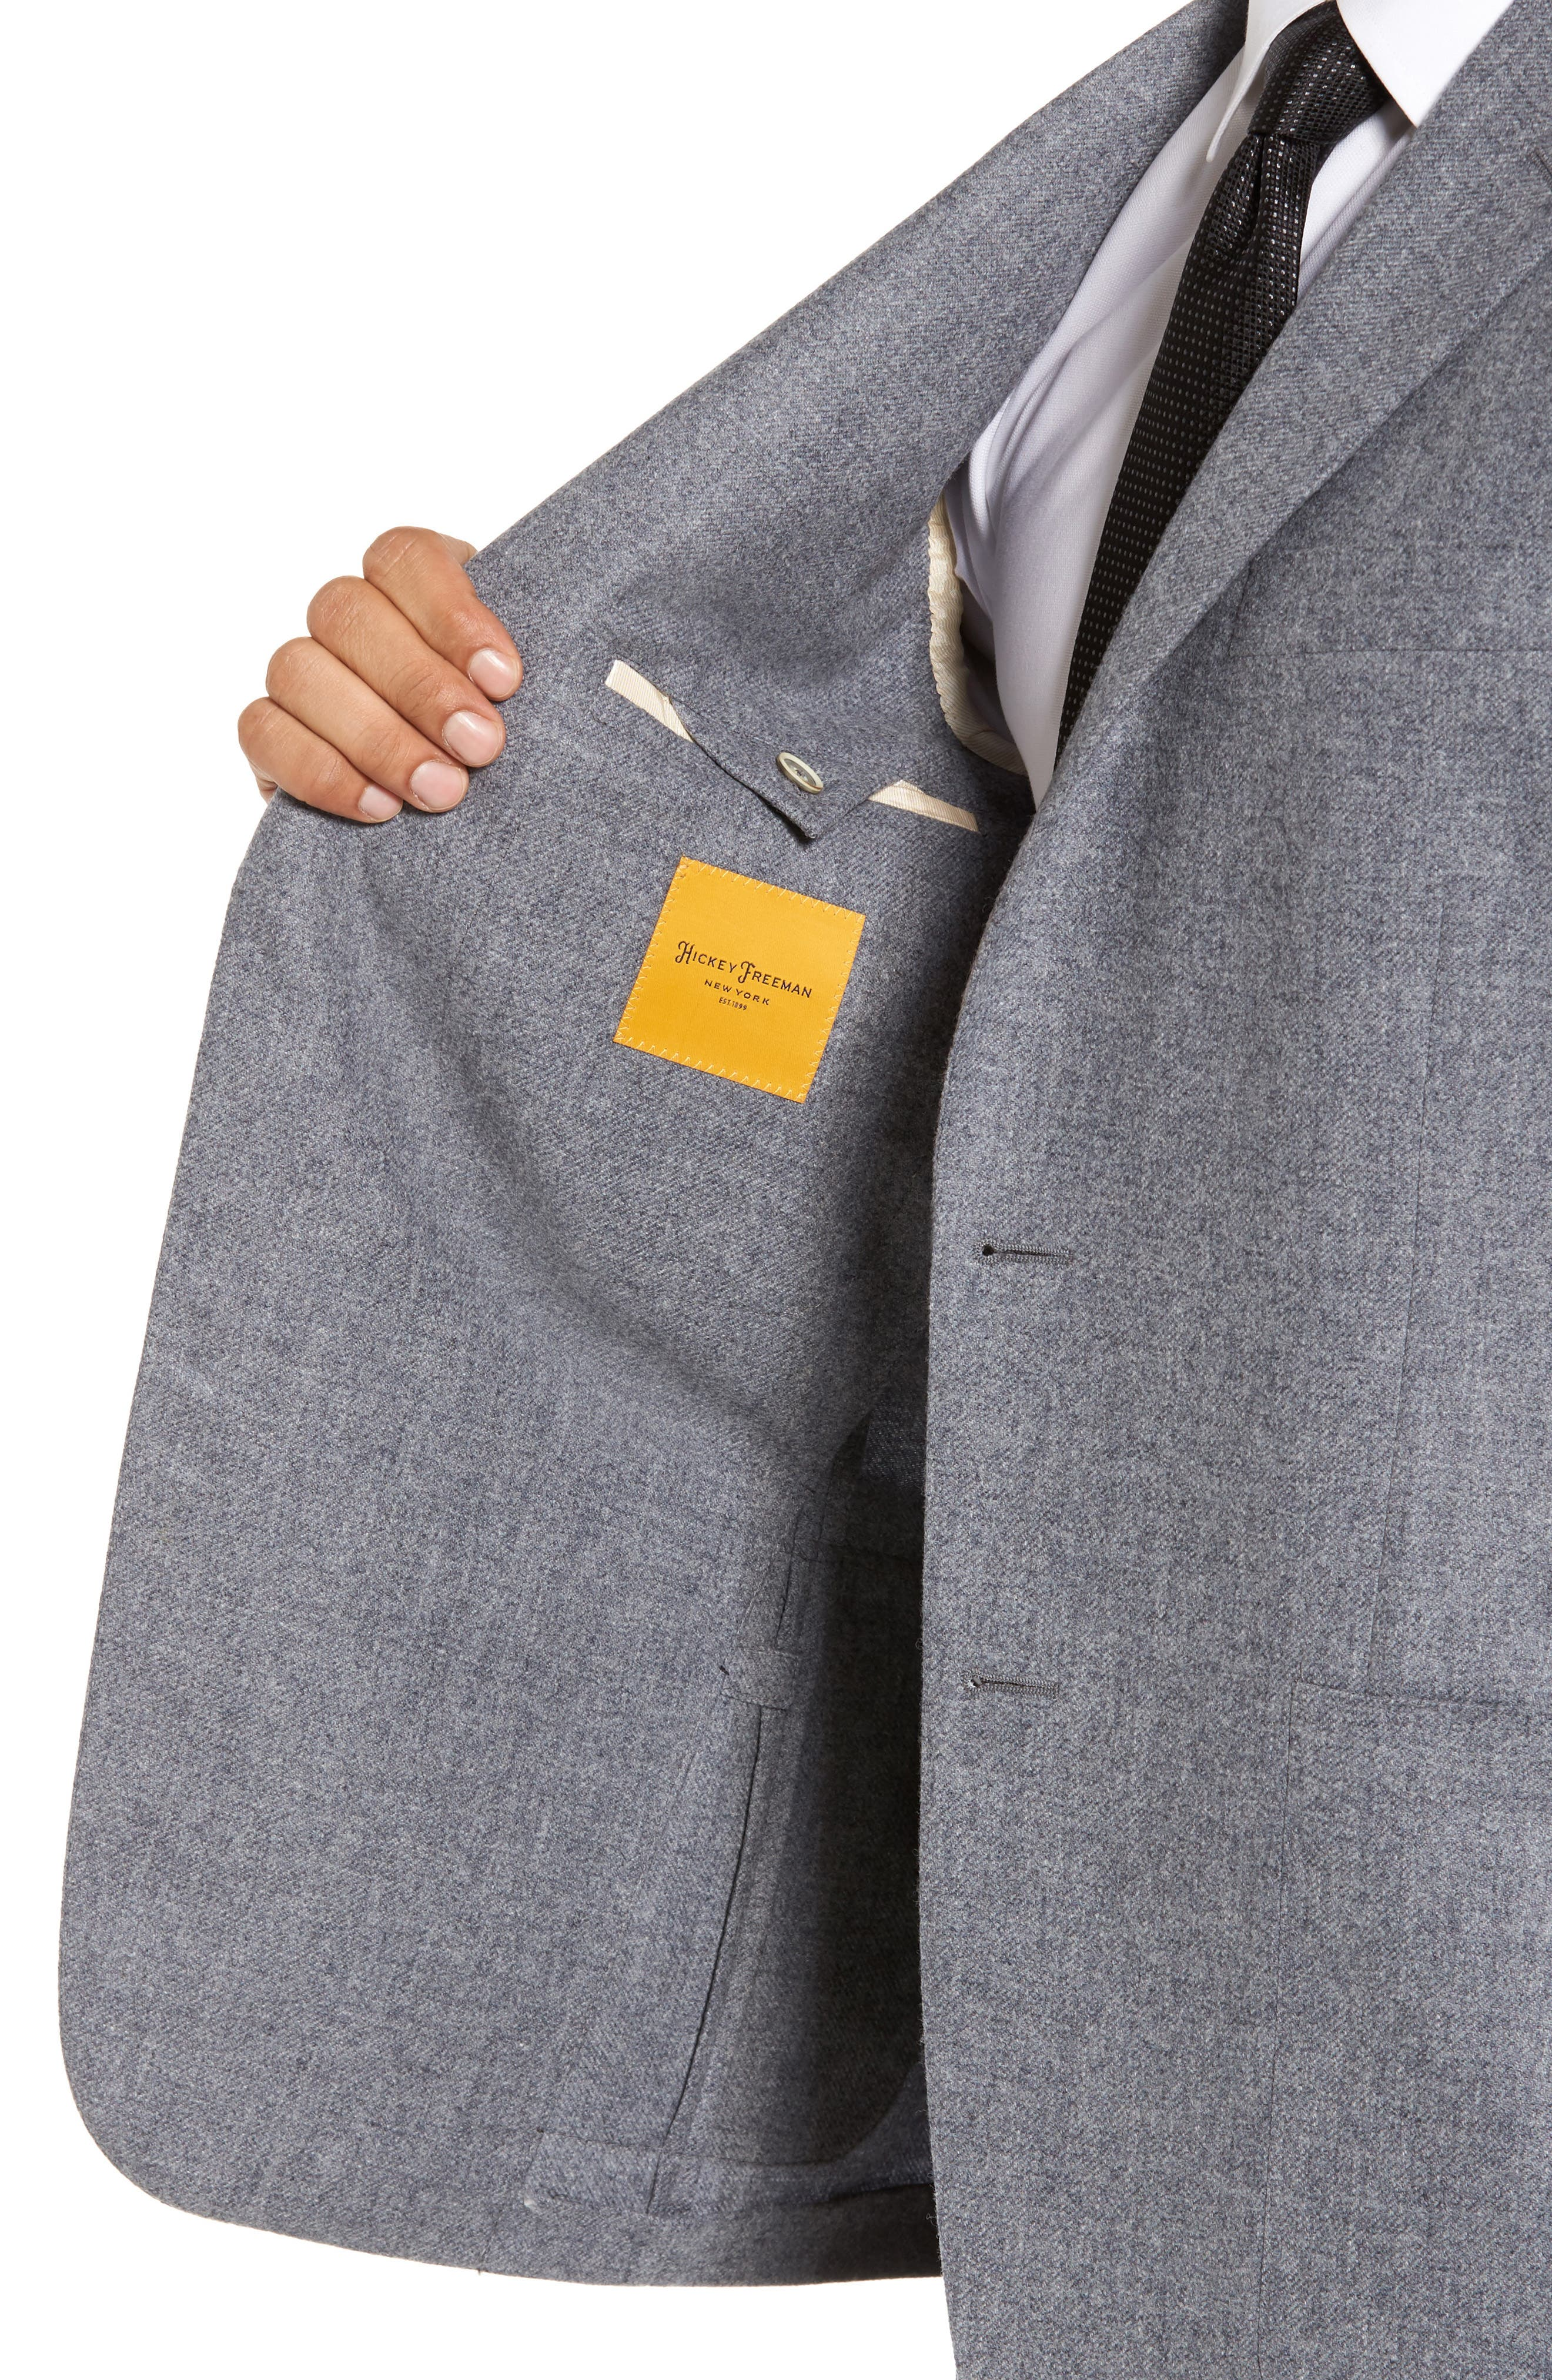 Classic B Fit Wool & Cashmere Blazer,                             Alternate thumbnail 4, color,                             050